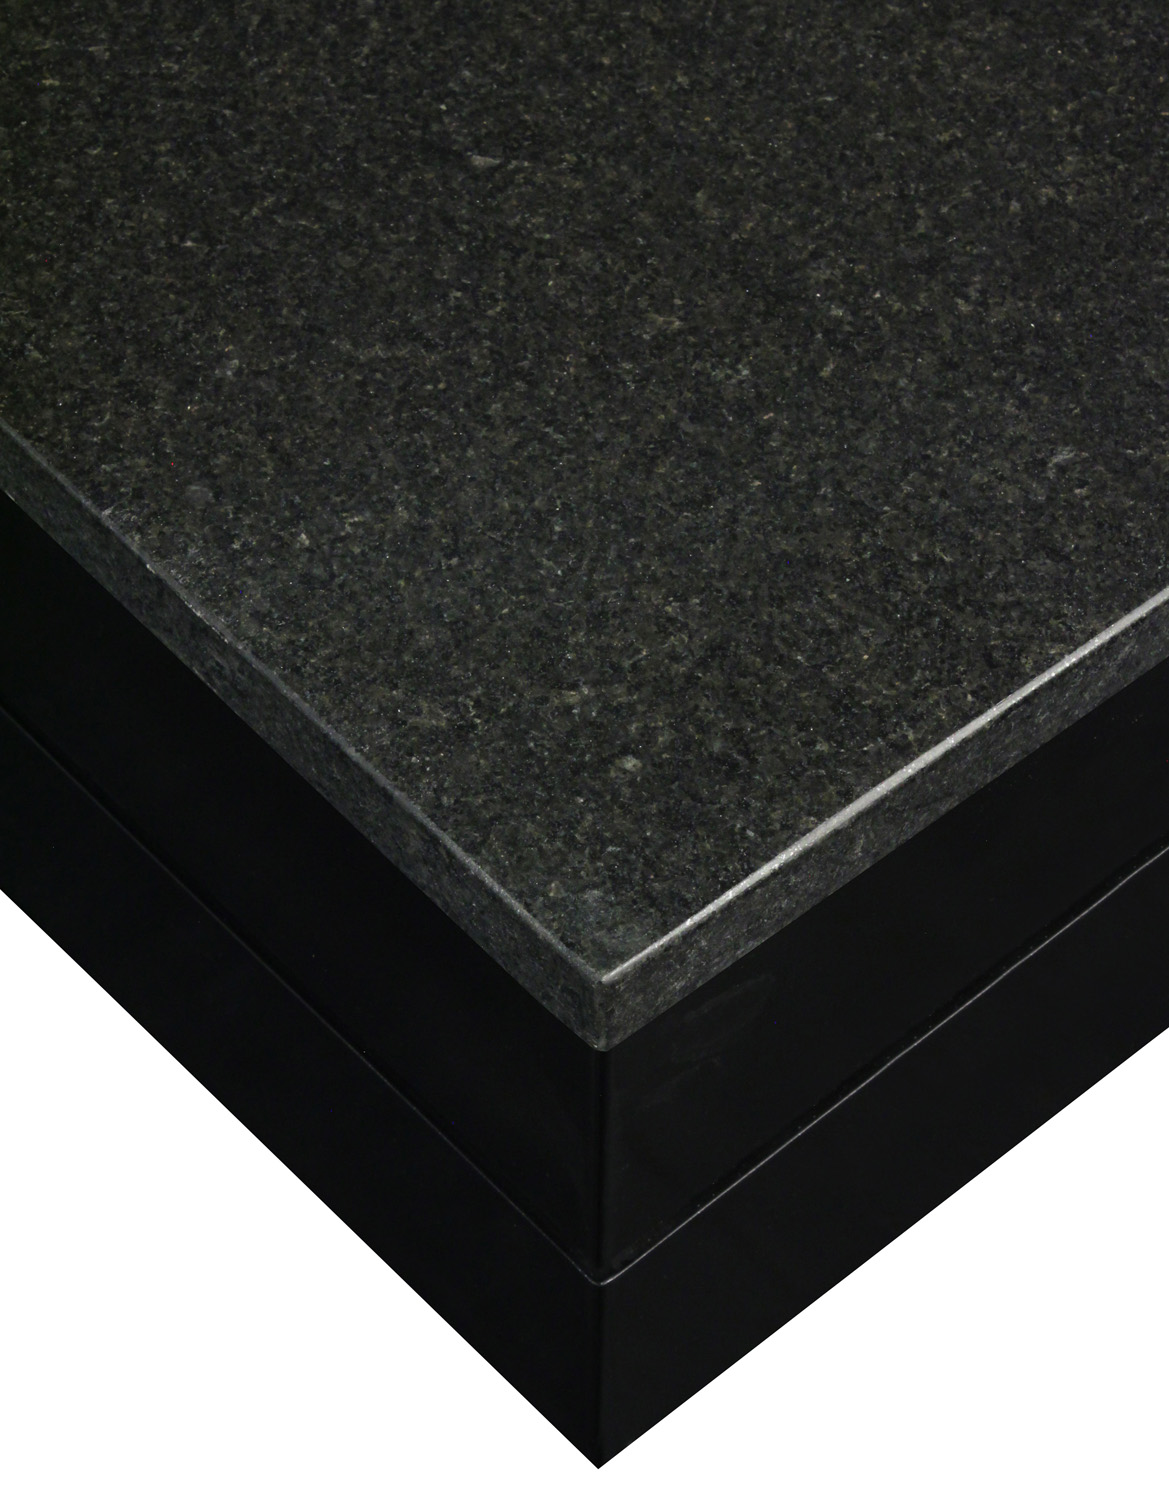 Montoya 75 sqr blk granite top coffeetable384 detail3 hires.jpg